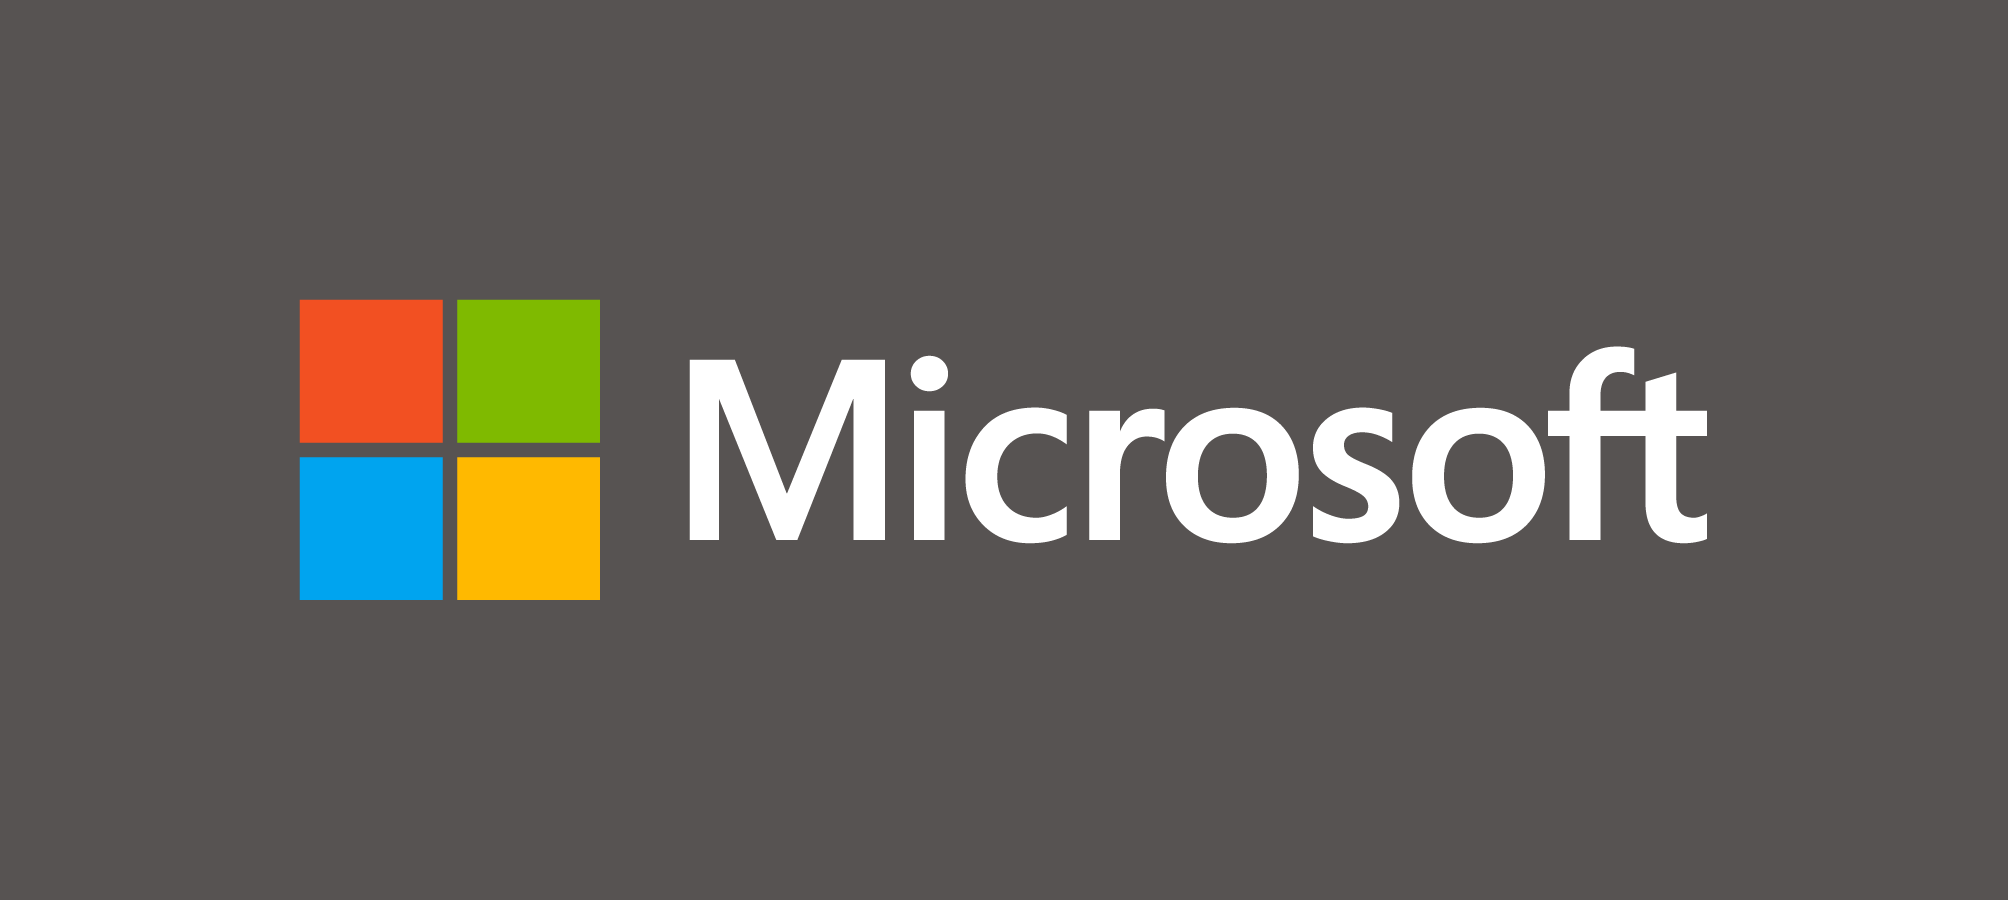 Microsoft and Onyxes (formally Al-Jareed) for Electronic & IT Banking Technology Forum in Iraq